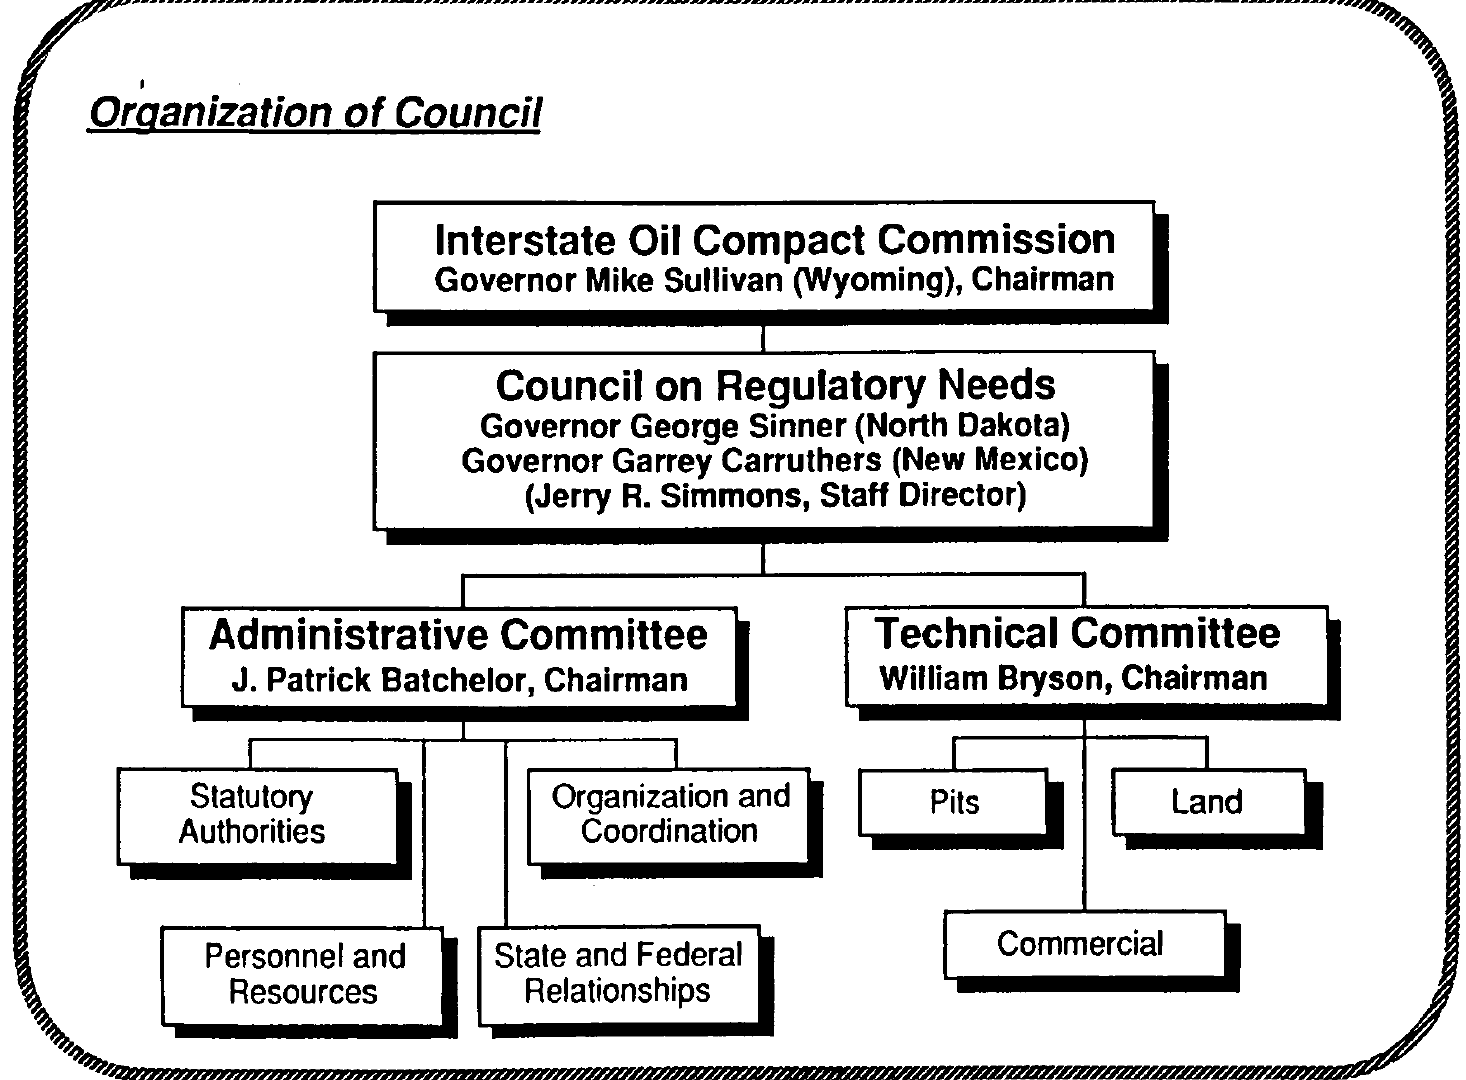 Council on Regulatory Needs